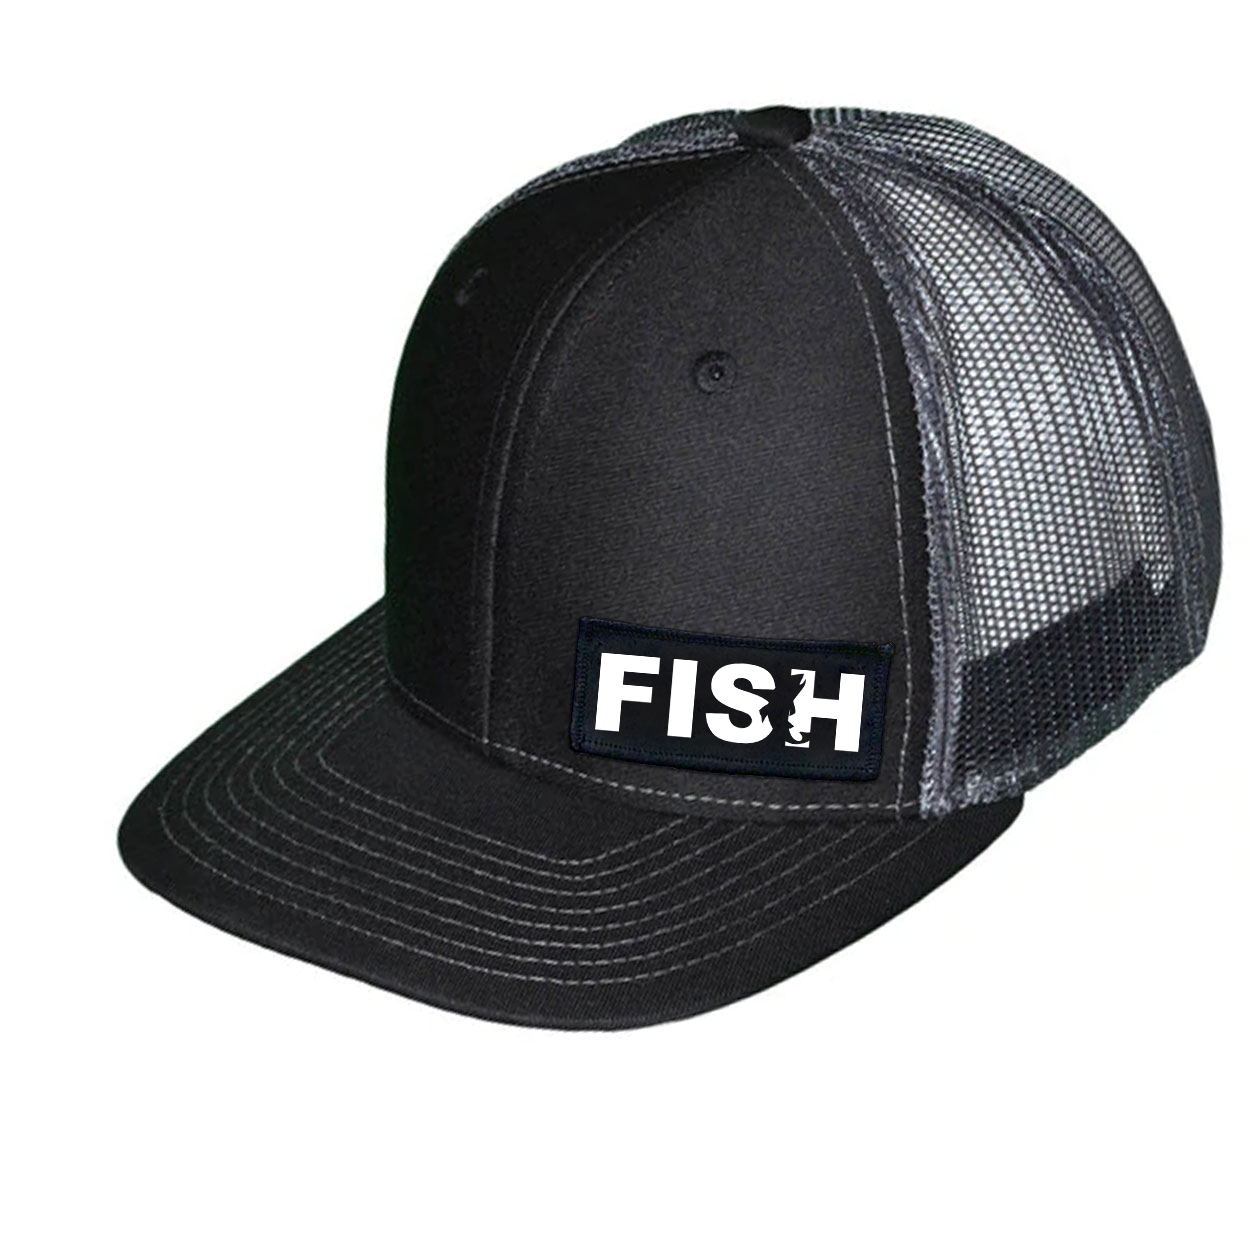 Fish Catch Logo Night Out Woven Patch Snapback Trucker Hat Black/Dark Gray (White Logo)